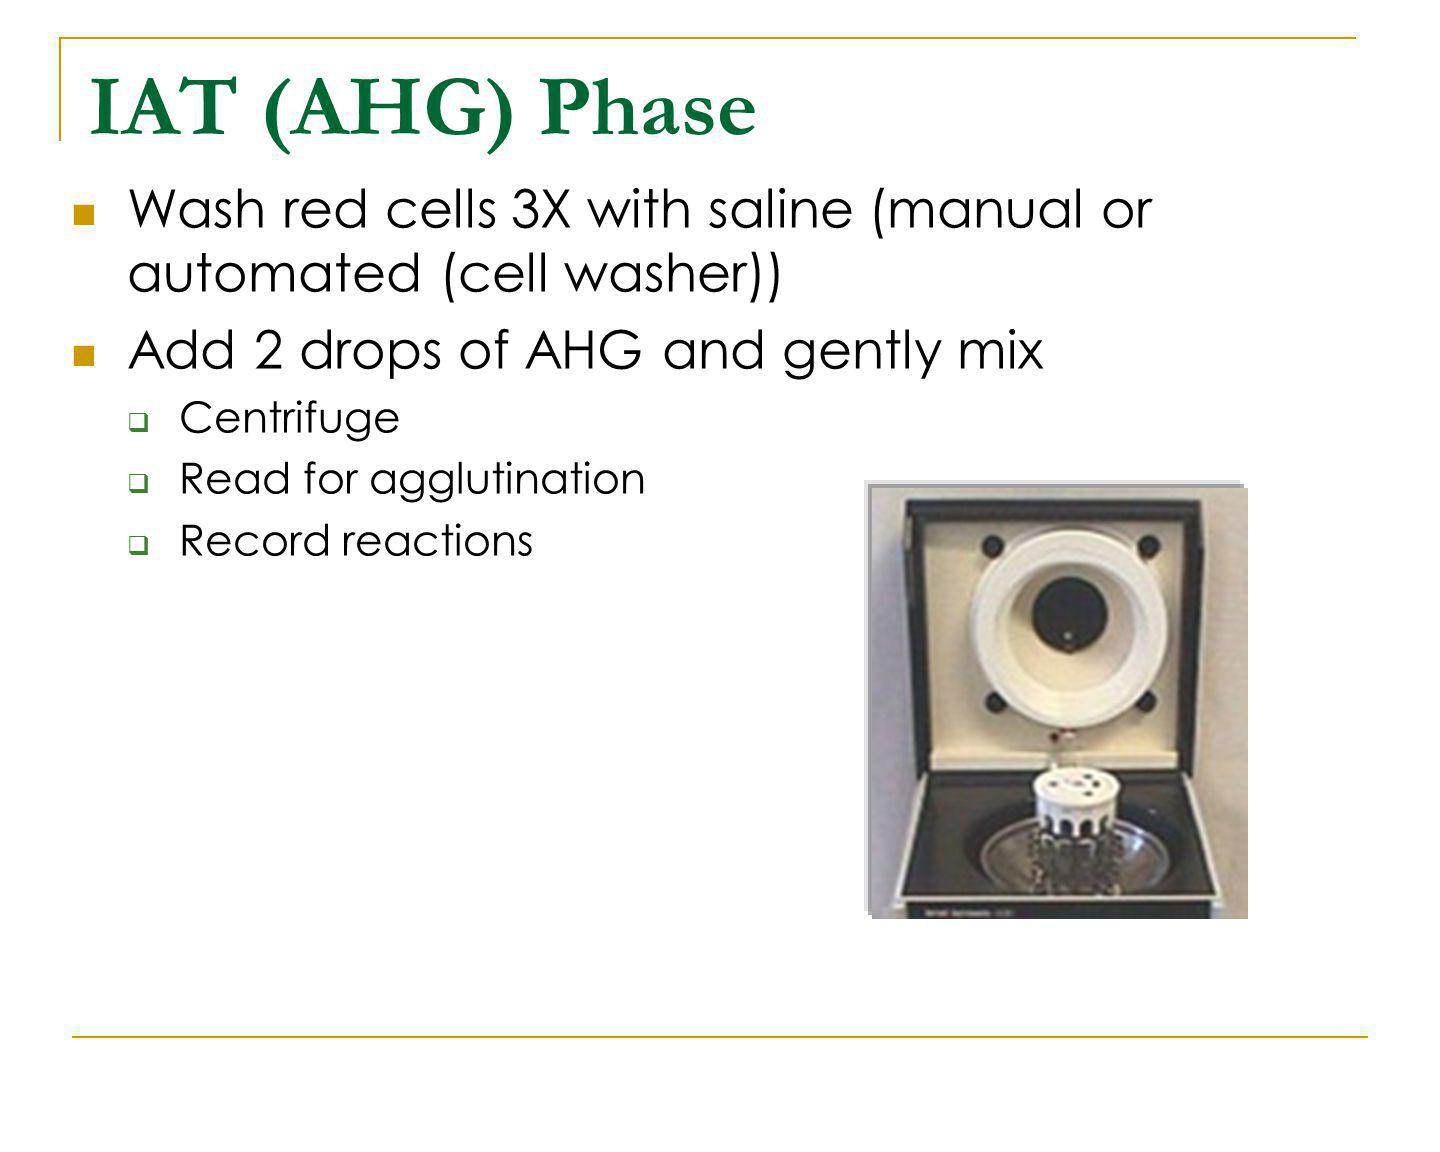 IAT (AHG) Phase Wash red cells 3X with saline (manual or automated (cell washer)) Add 2 drops of AHG and gently mix Centrifuge Read for agglutination